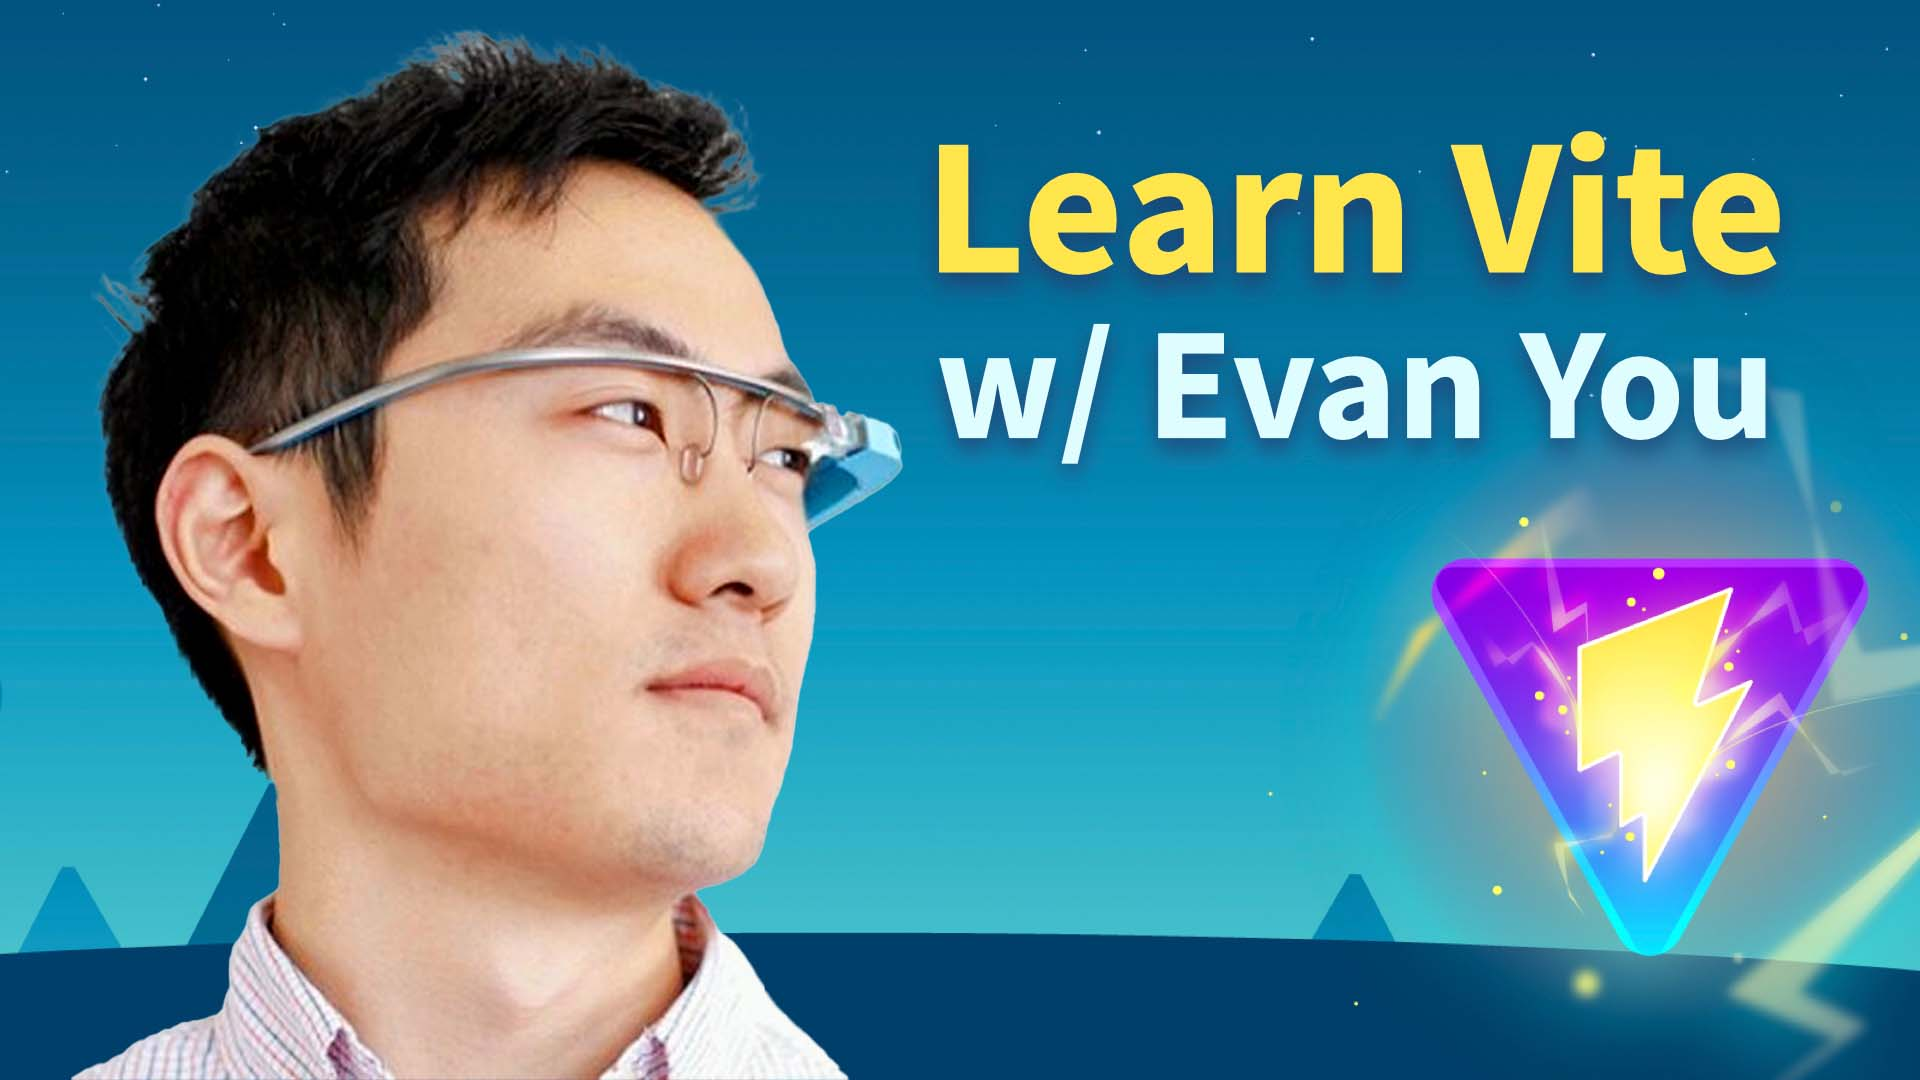 Learn Vite with Evan You